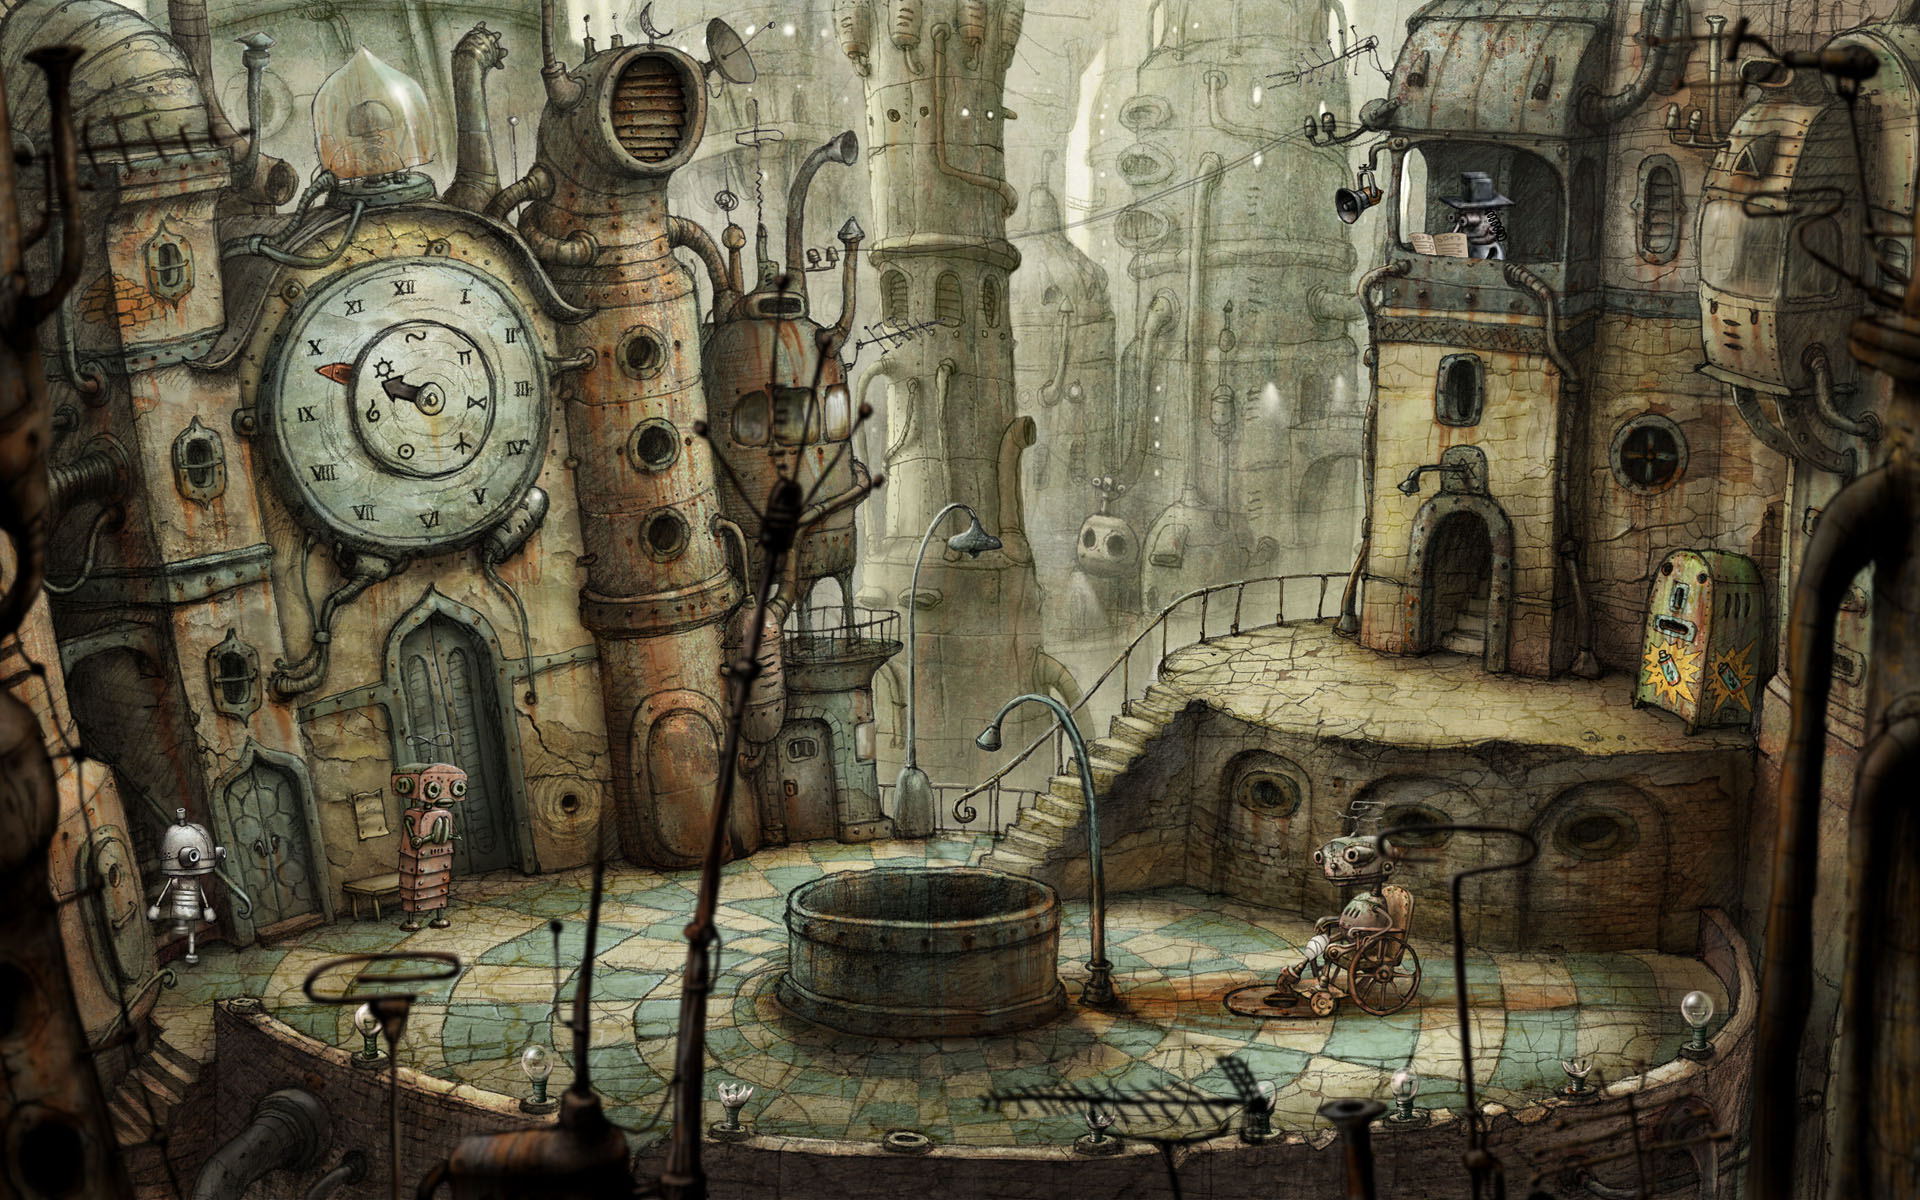 http://aliselvi.com/wp-content/uploads/2011/04/machinarium-wallpaper-plaza-1920x1200.jpg